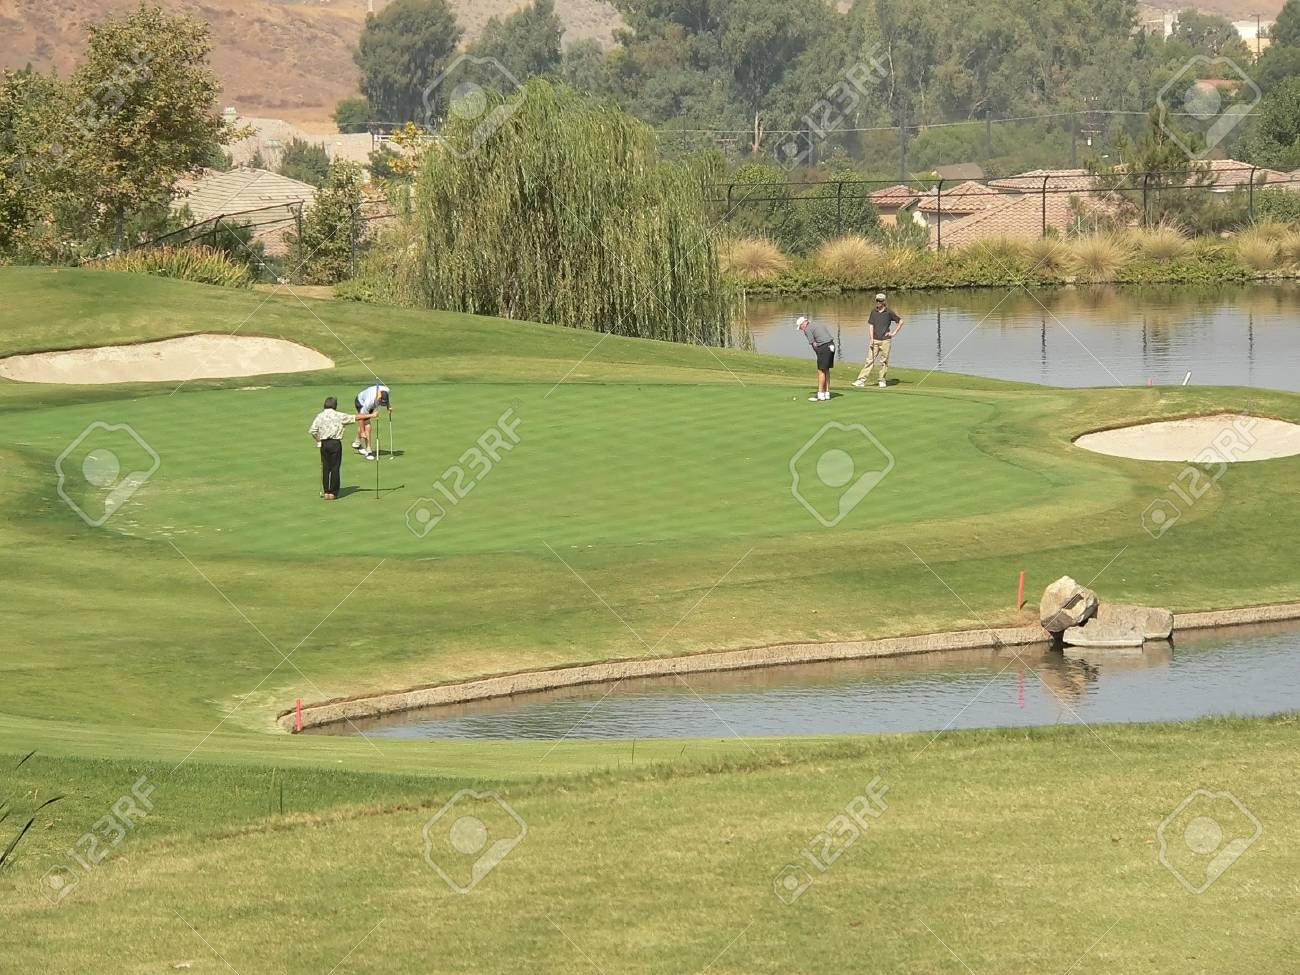 Golf Course and Tournament Stock Photo - 544493